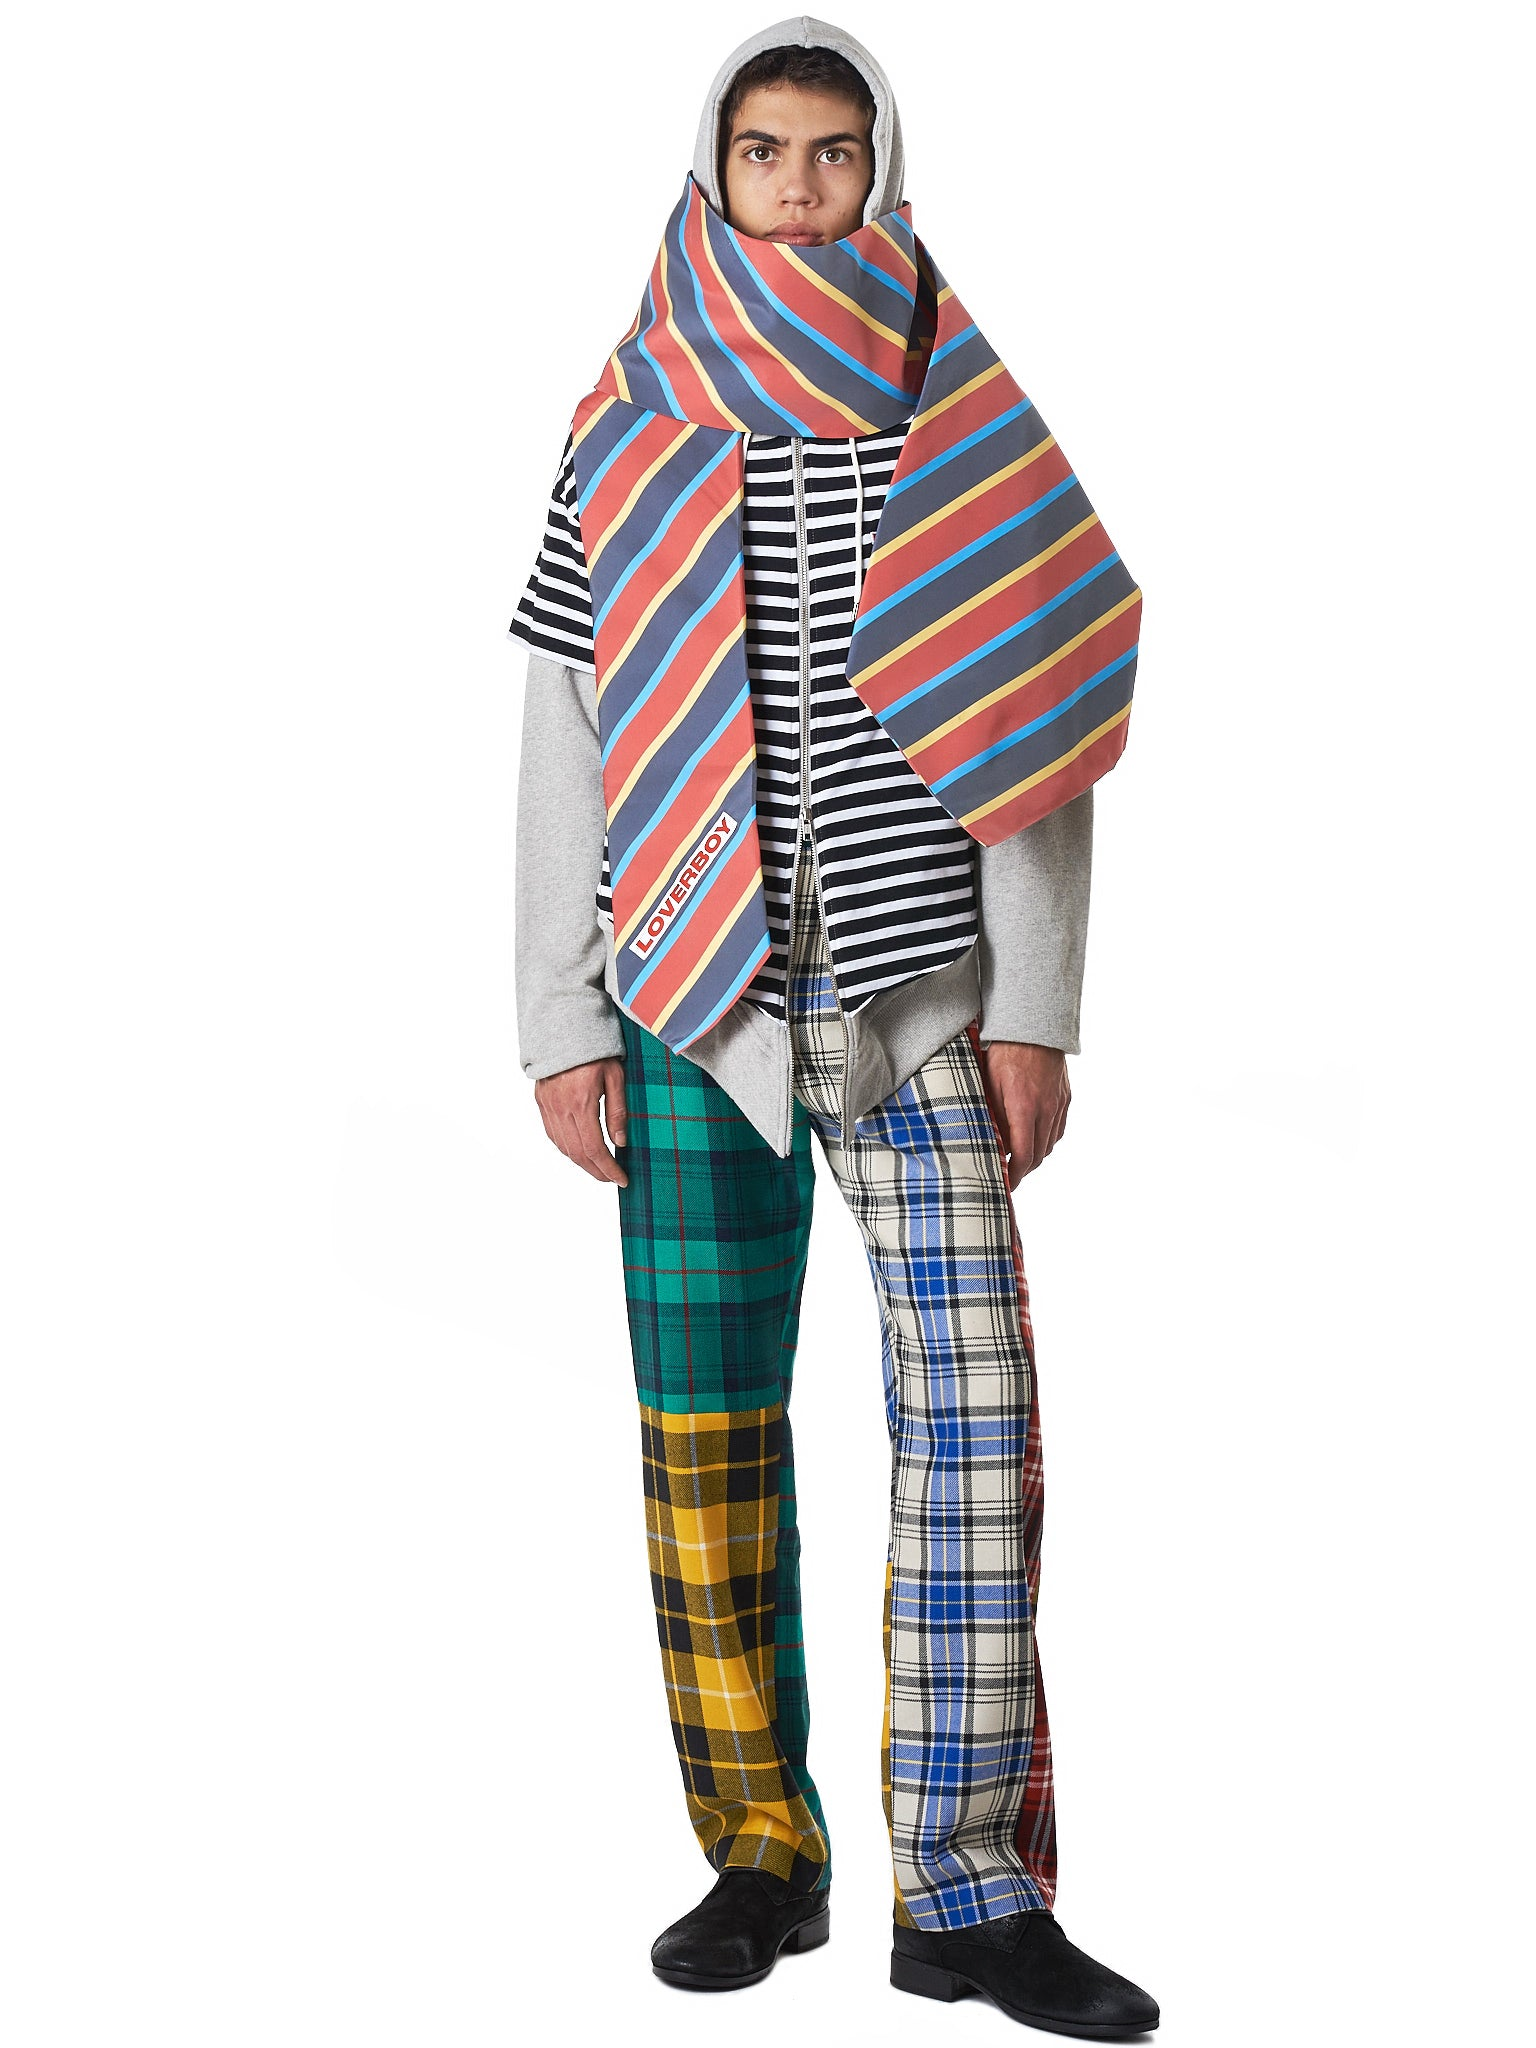 Charles Jeffrey Loverboy Striped Hoodie - Hlorenzo Style